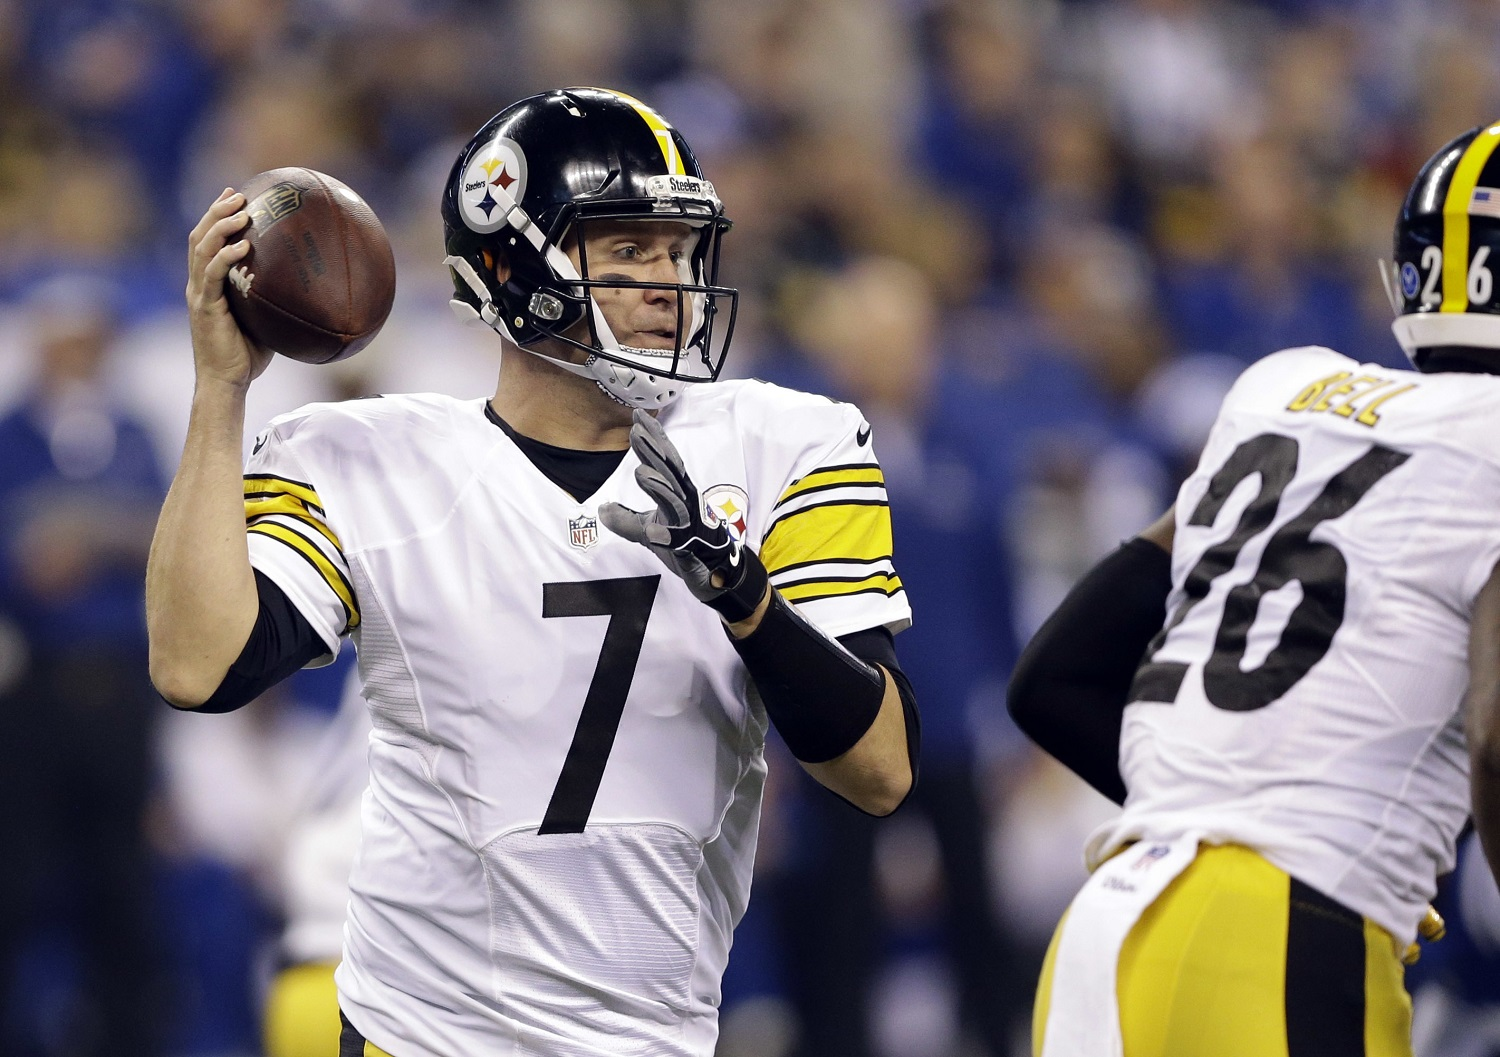 Pittsburgh Steelers quarterback Ben Roethlisberger drops back to pass during the first half an NFL football game against the Indianapolis Colts Thursday, Nov. 24, 2016, in Indianapolis. (AP Photo/Michael Conroy)